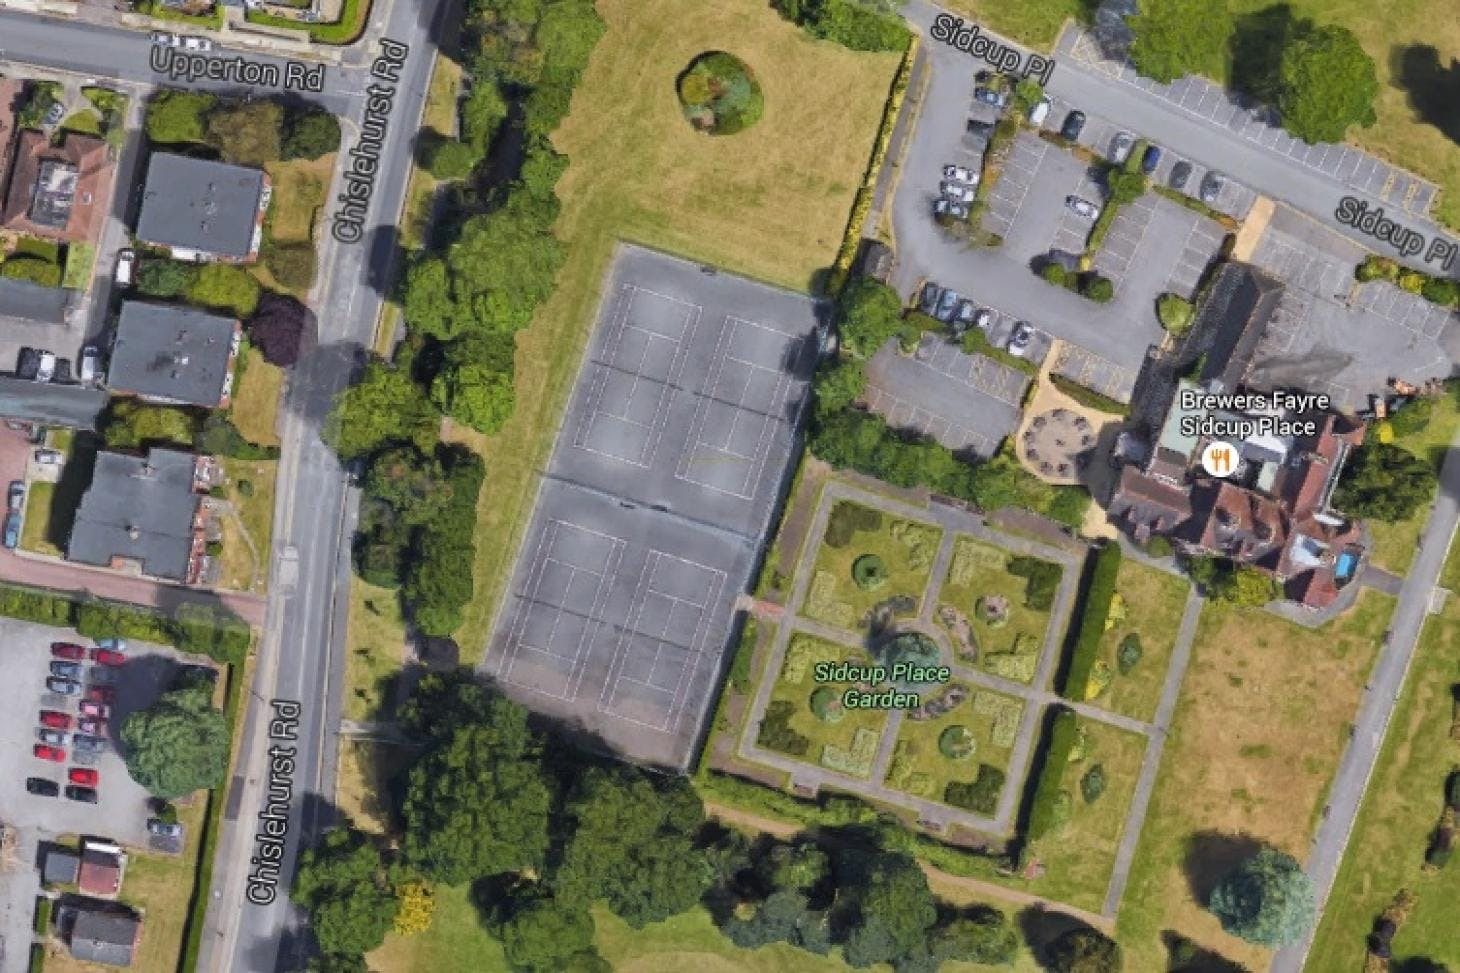 Sidcup Place Outdoor | Hard (macadam) tennis court